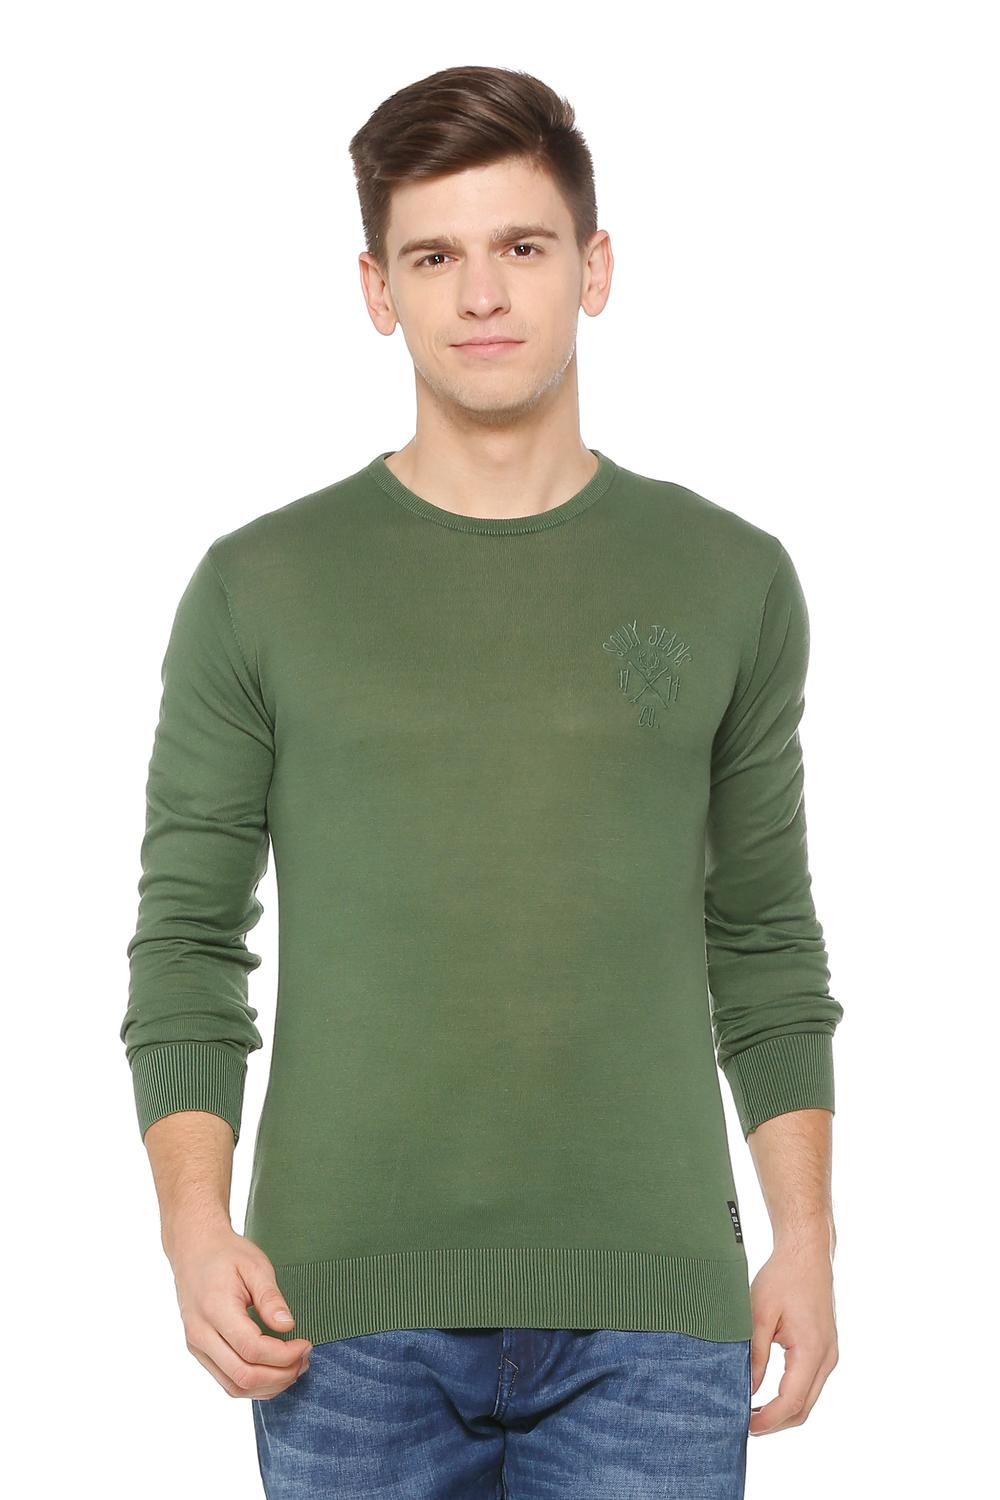 Solly Jeans Co Sweaters, Allen Solly Green Sweater for Men at Allensolly.com